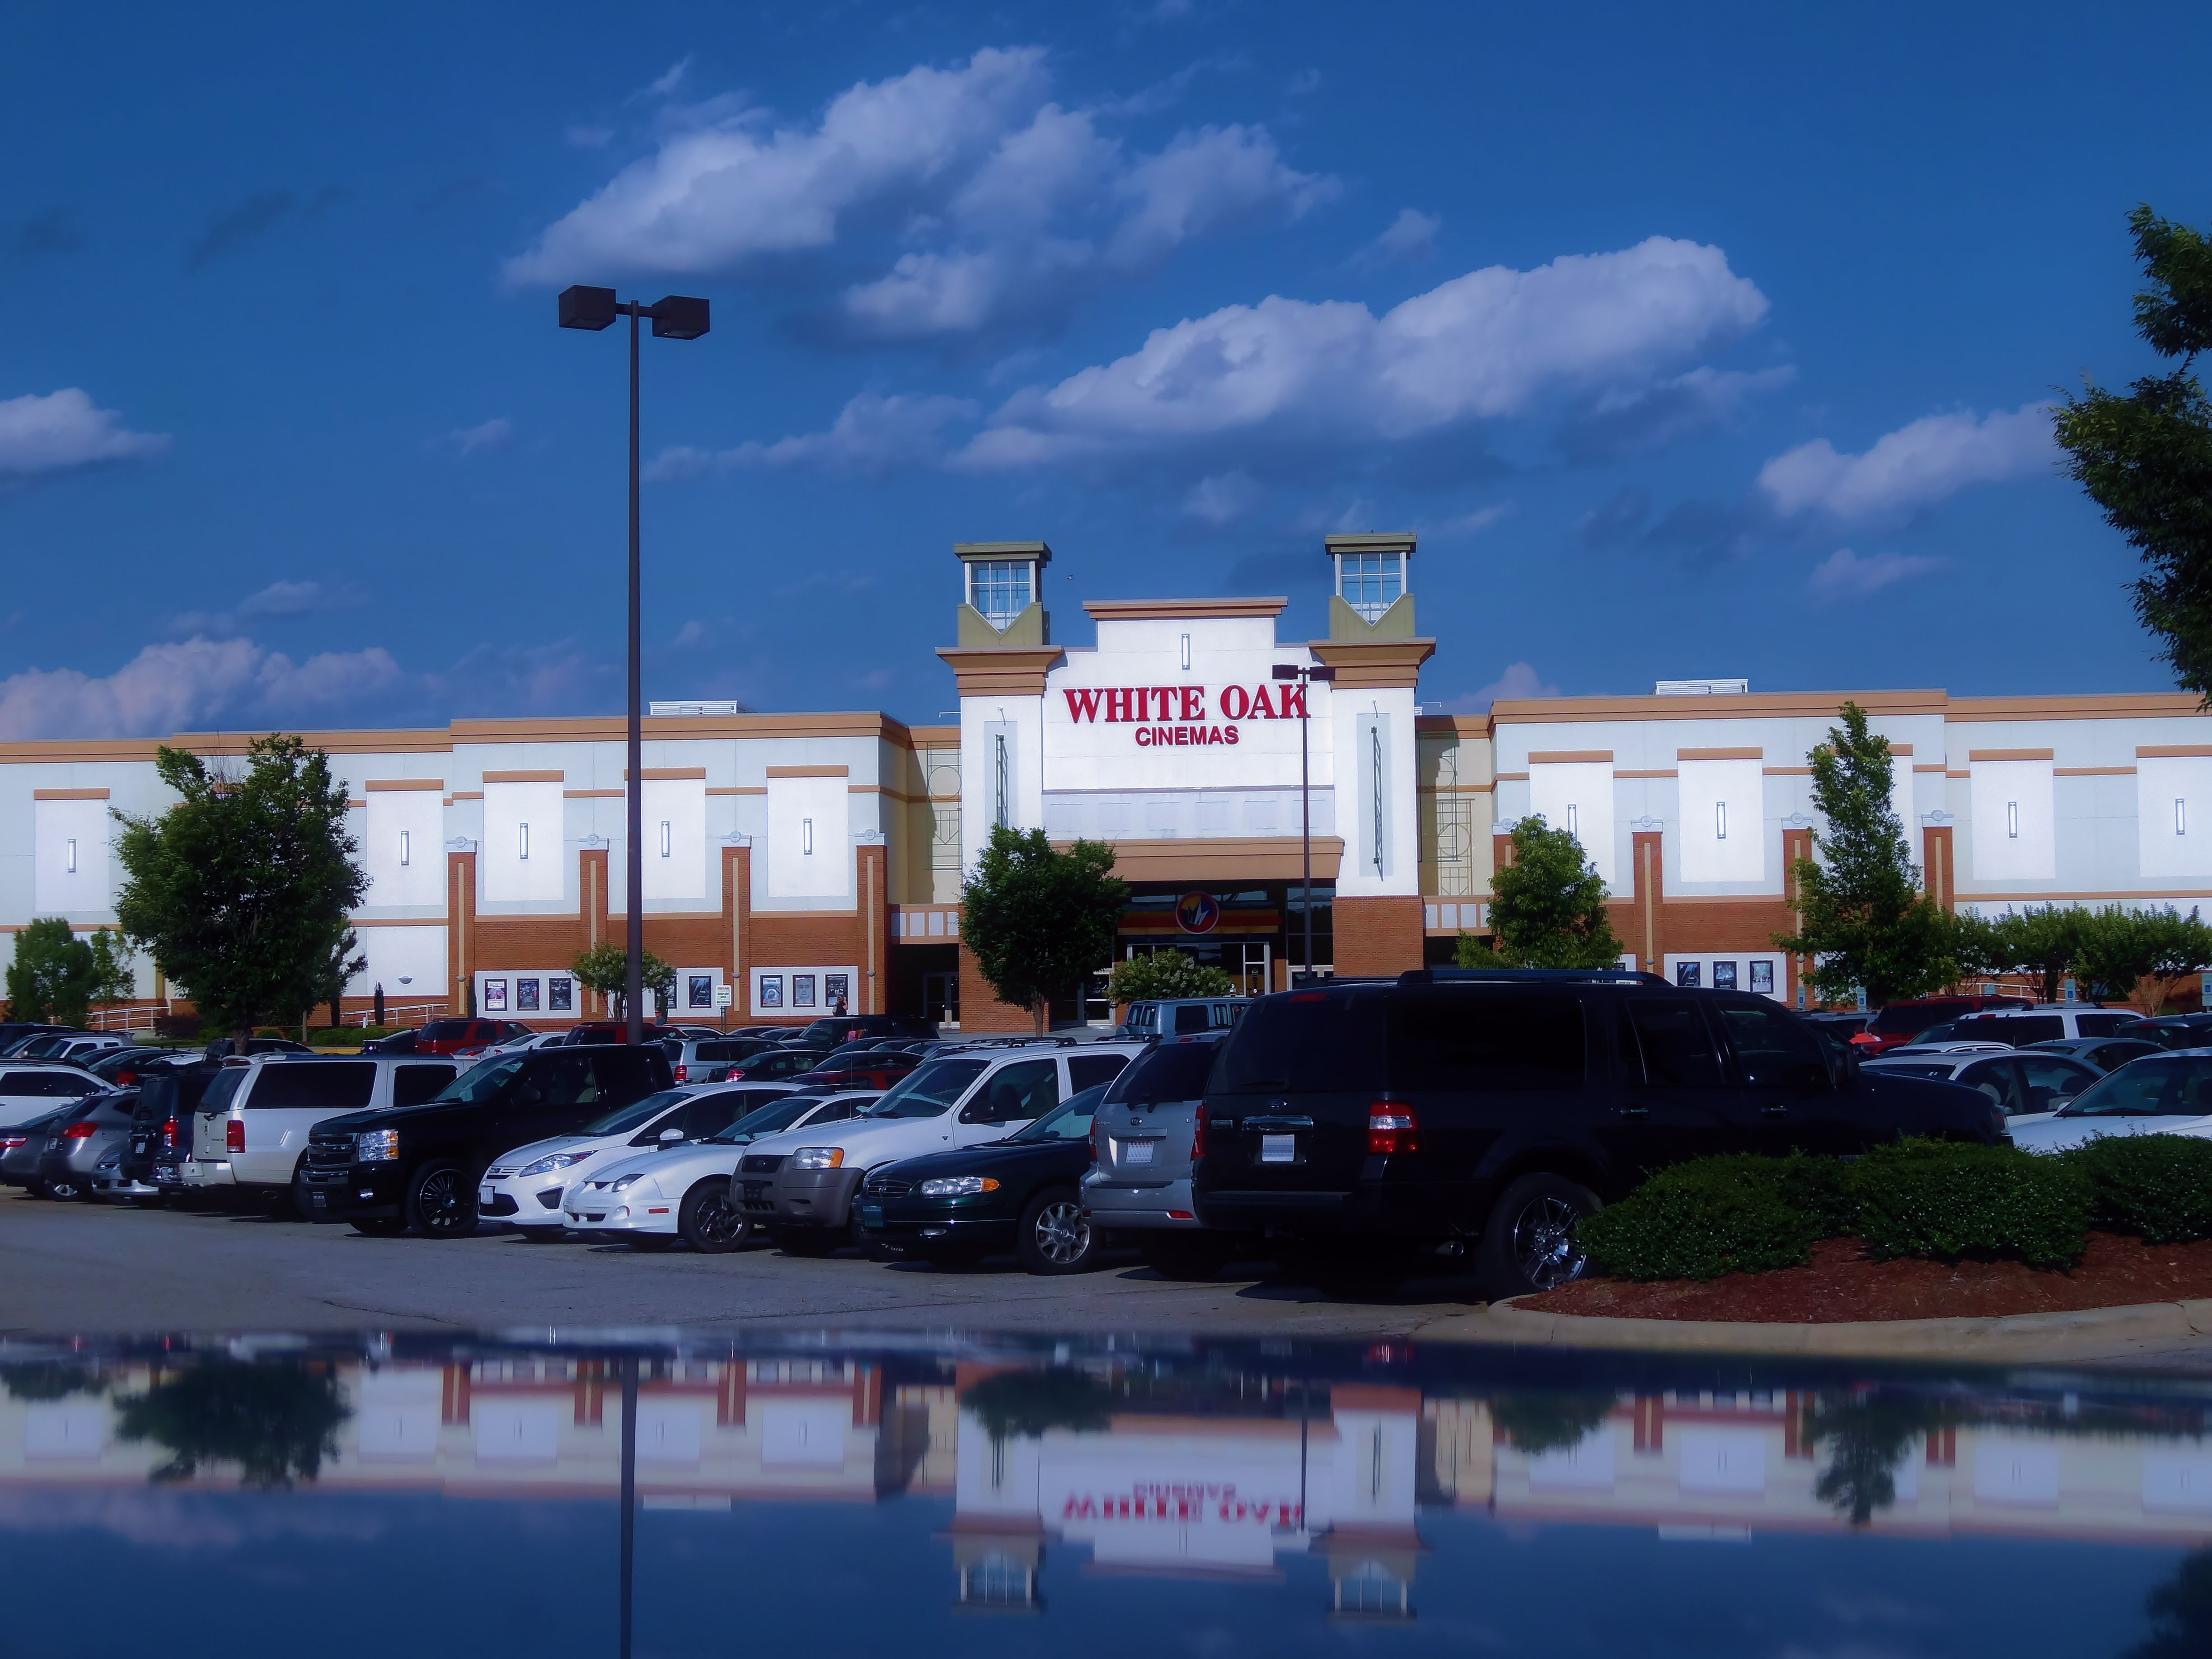 white oak cinemas garner places white oak north carolina white oak cinemas garner places white oak north carolina